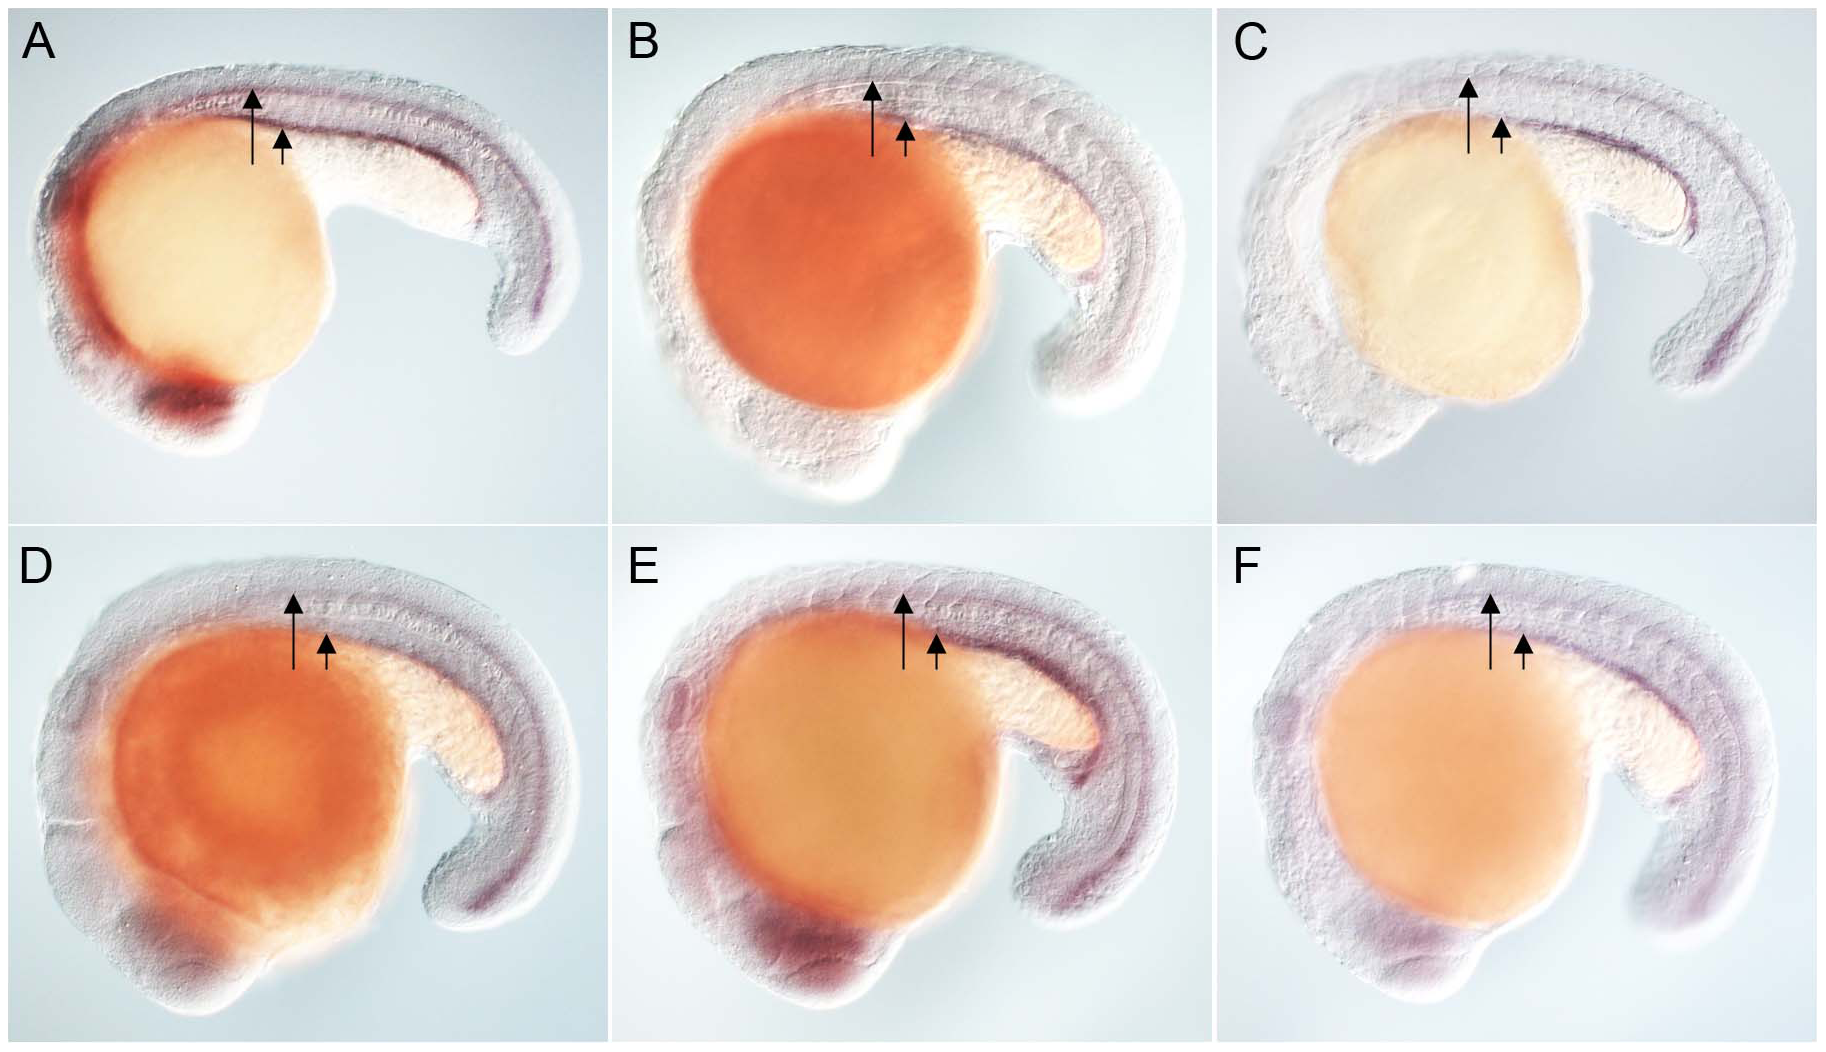 Zebrafish FoxJ2 and FoxJ3 are unable to induce the expression of ciliary genes.